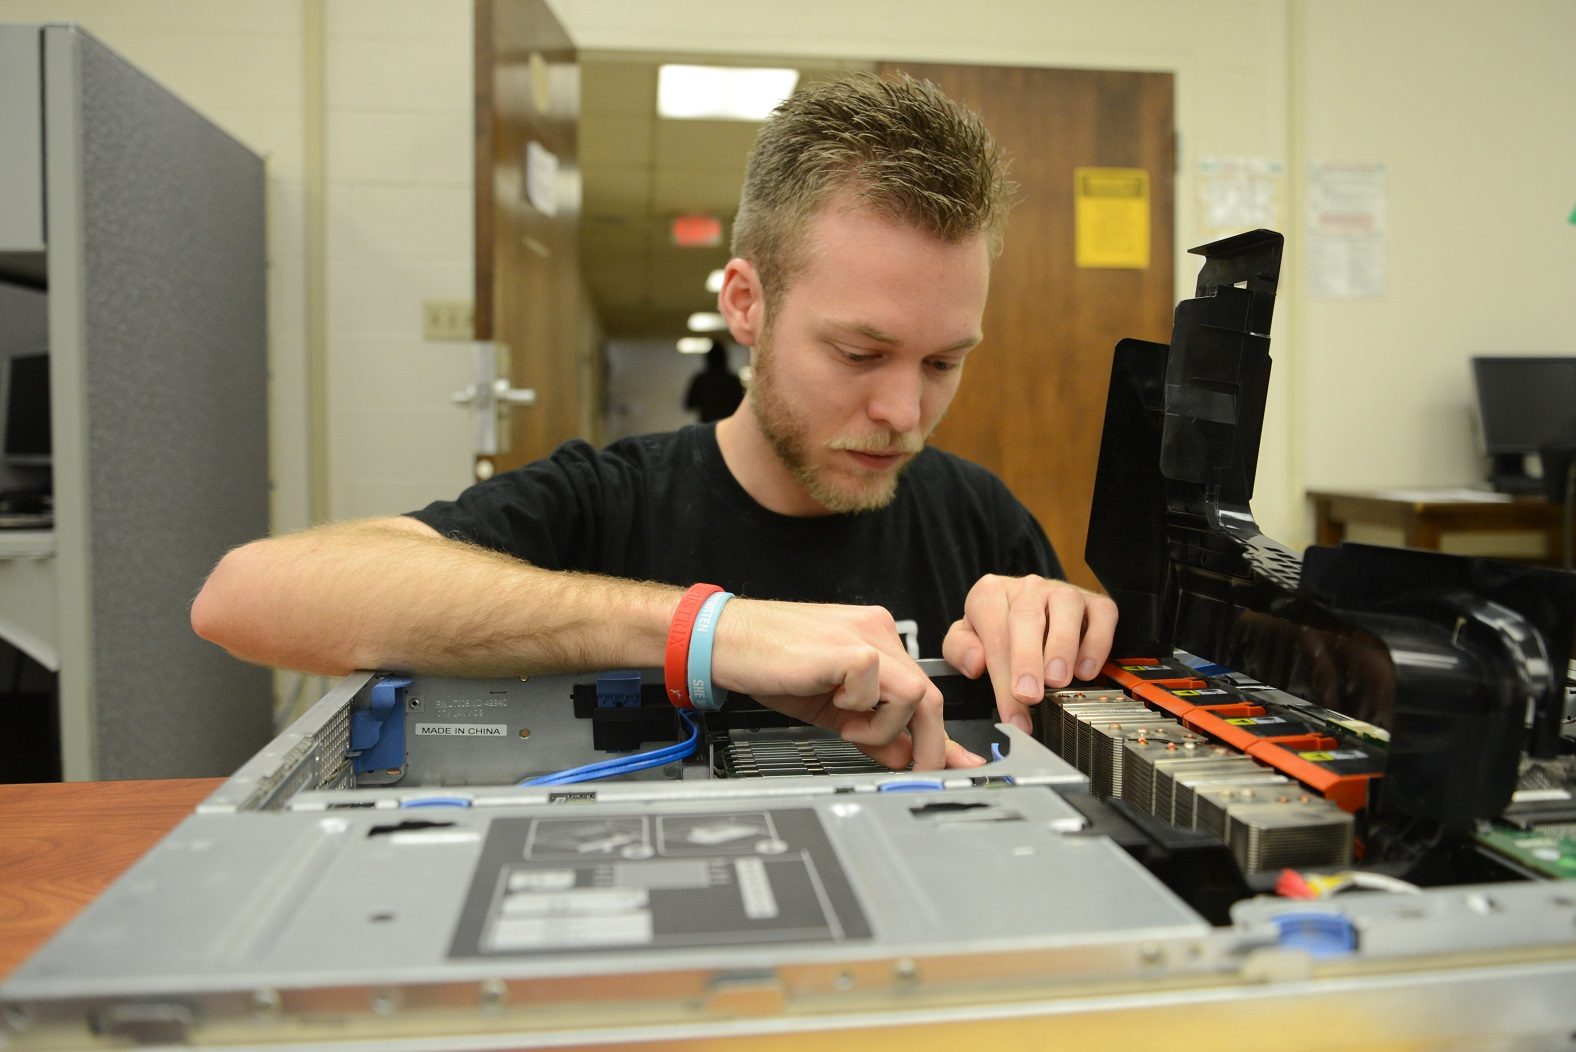 student working on large piece of computer equipment, looking down at it